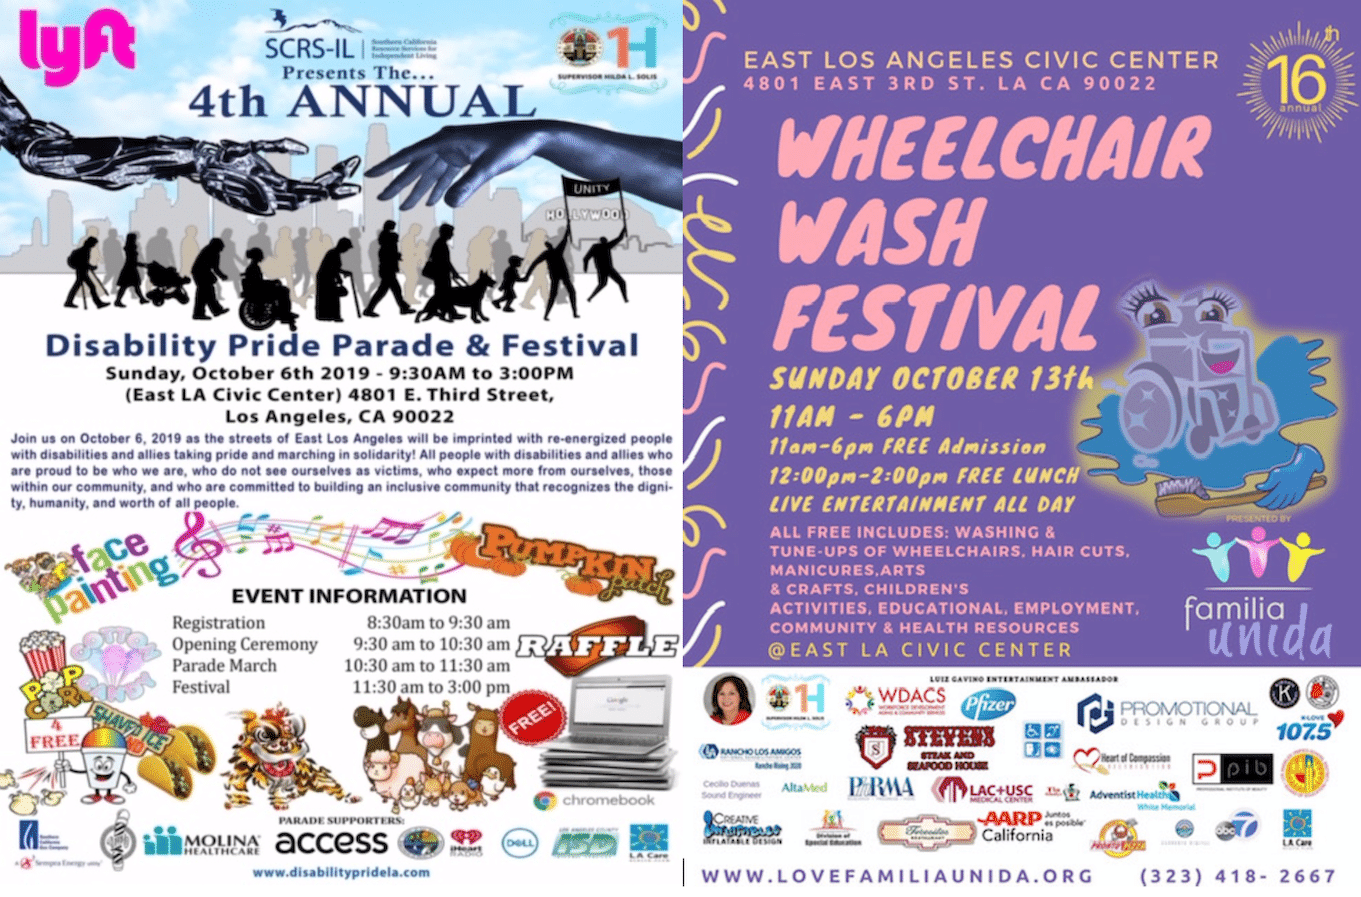 "Two fliers side by side. The first reads, ""4th Annual Disability Pride Parade & Festival. Sunday, October 6, 2019, 9:30am - 3pm, East LA Civic Center, 4801 E. 3rd Street, Los Angeles, CA 90022. The second reads, ""Wheelchair Wash Festival, Sunday, October 13, 2019, 11am - 6pm. Free admission. East Los Angeles Civic Center, 4801 East 3rd Street, Los Angeles, CA 90022."